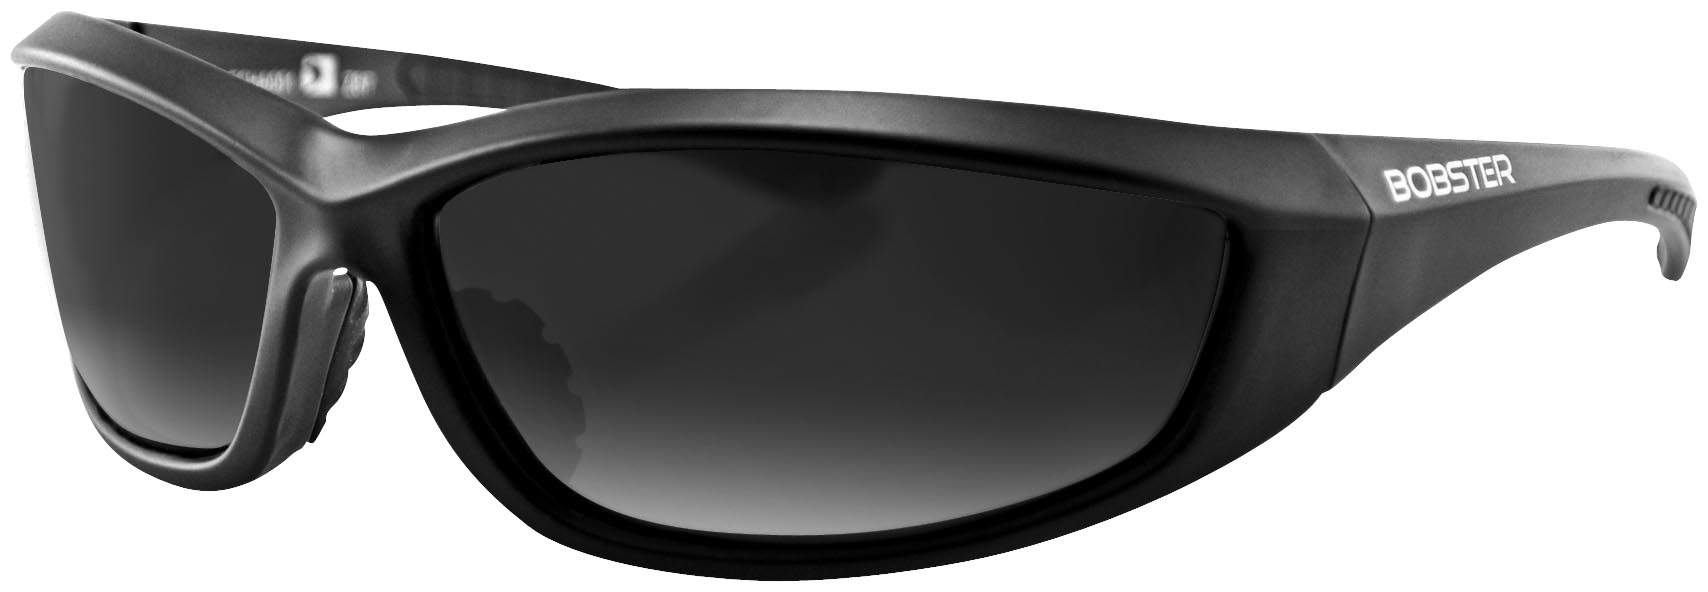 Bobster Charger Sunglasses Ansi Z87 Impact Certification Choose